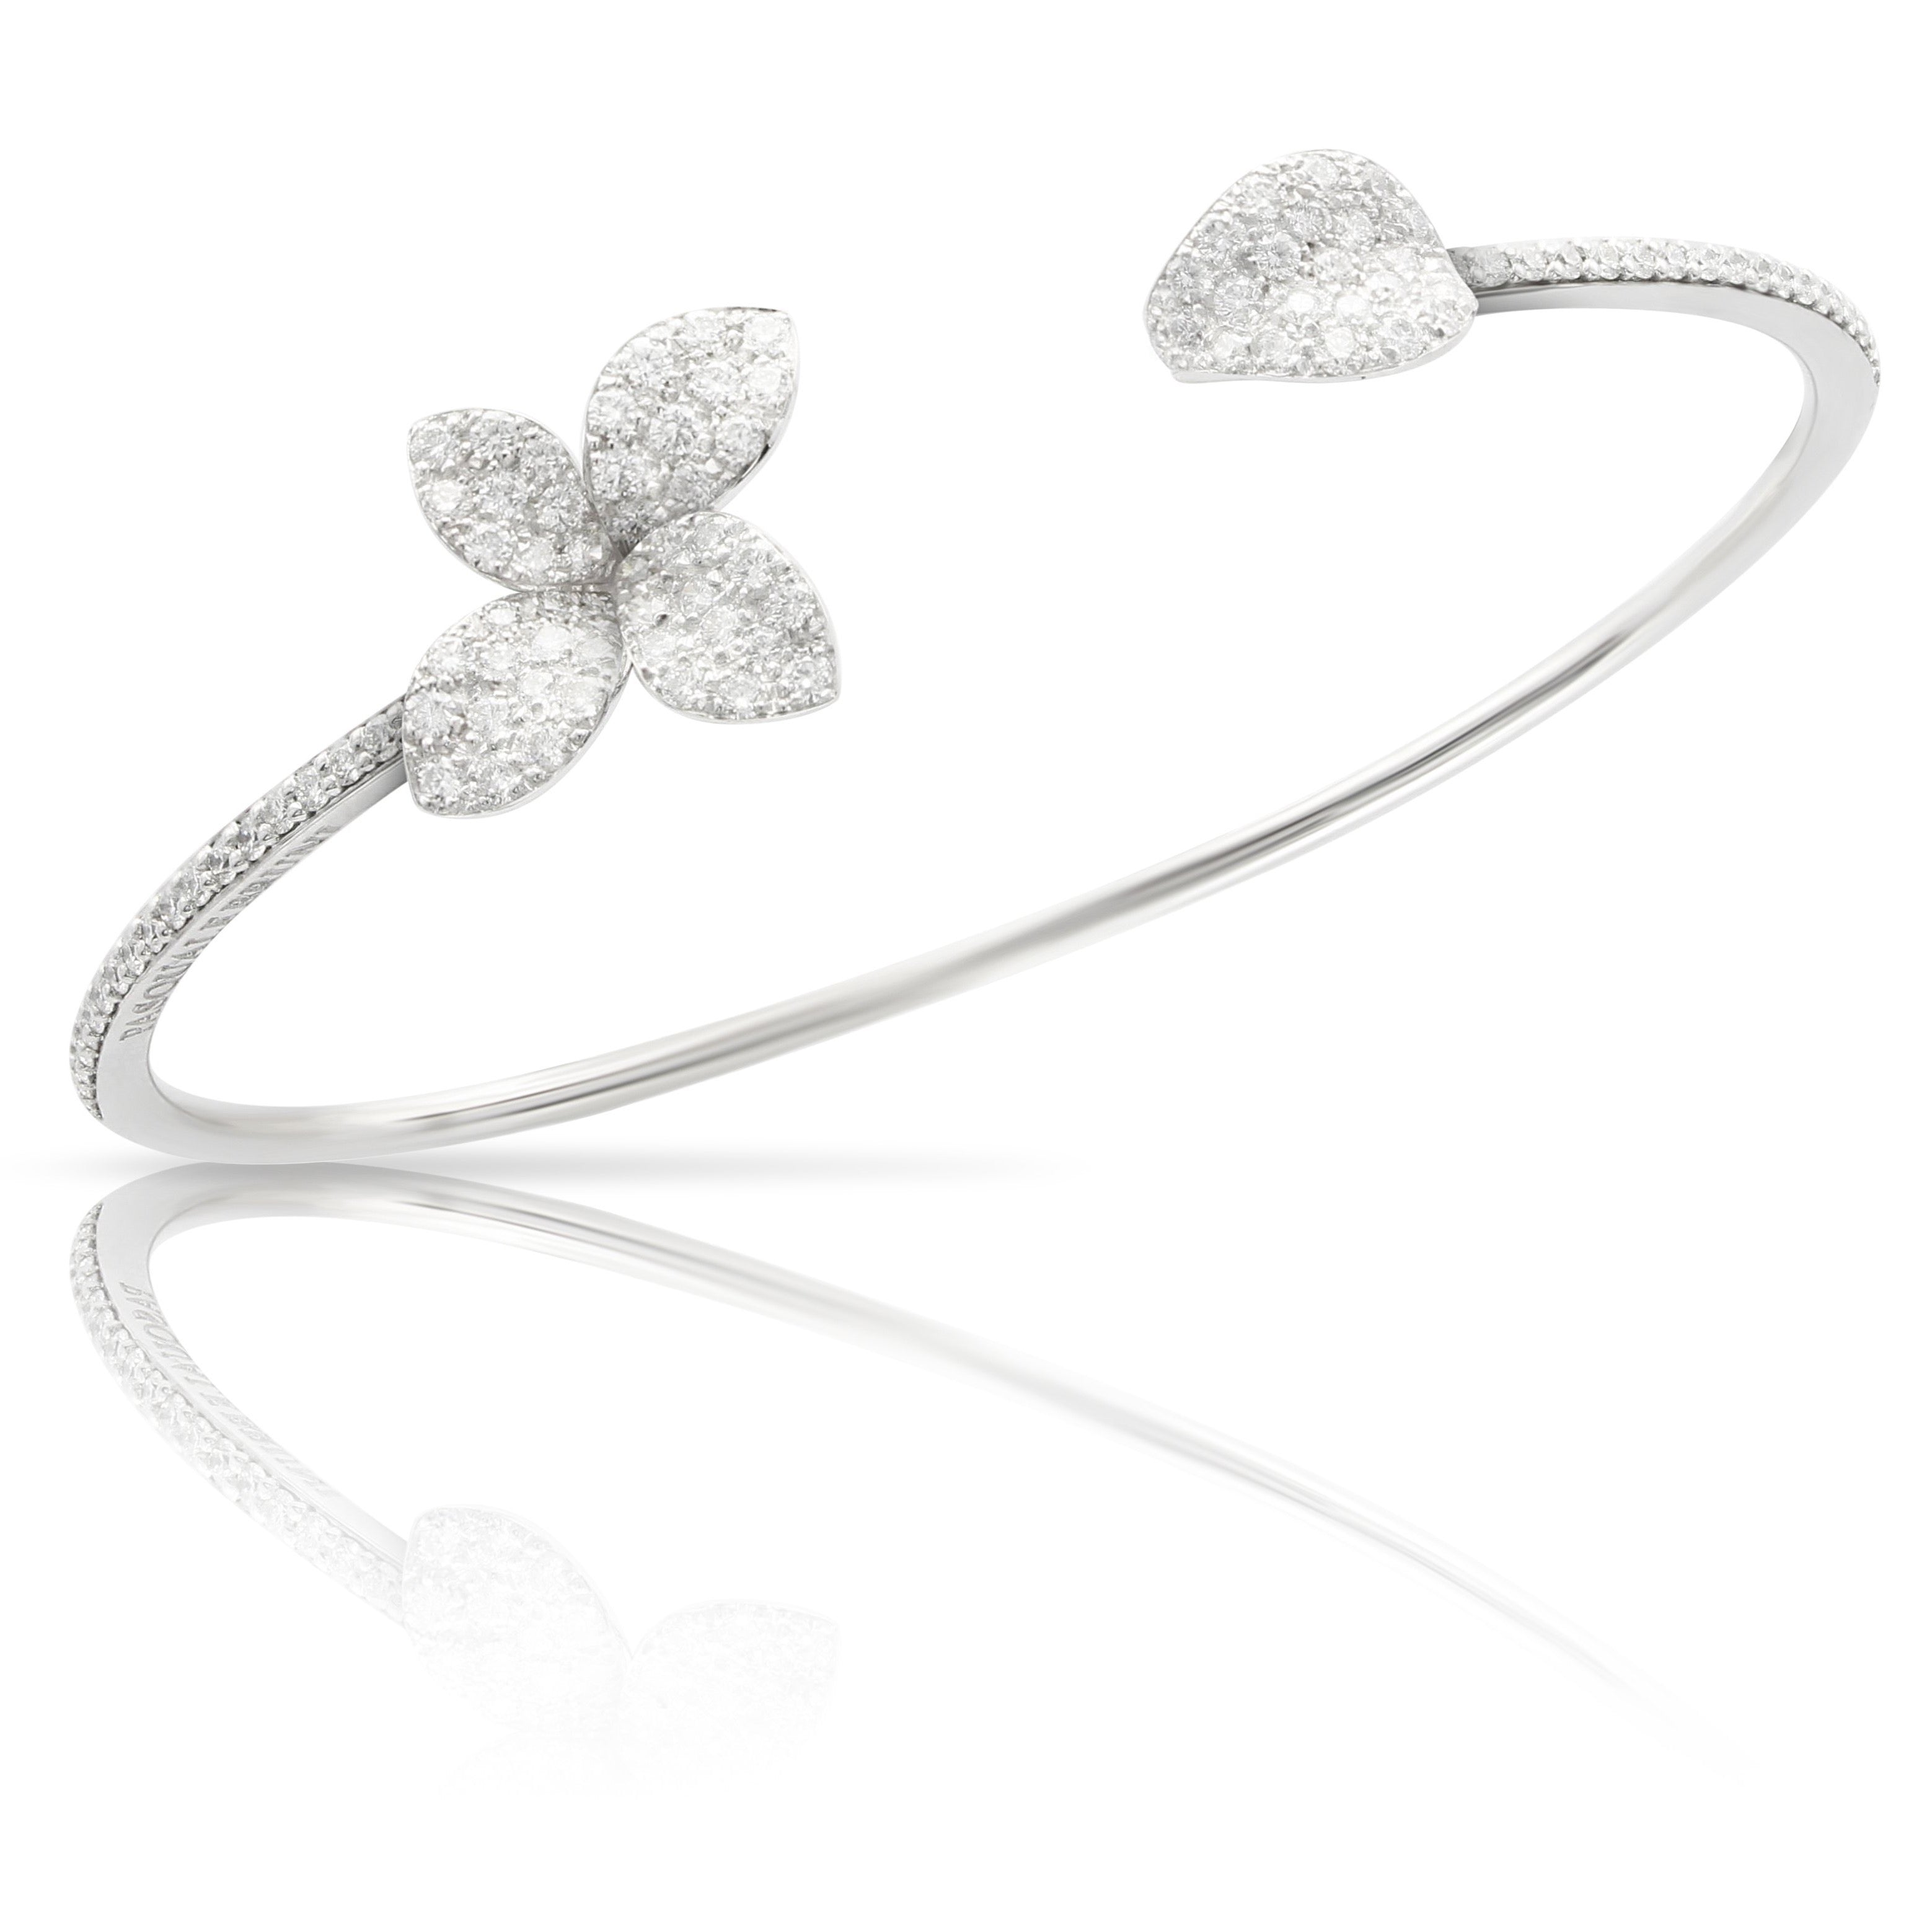 Pasquale-Bruni-Giardini-Segreti-Petit-Flex-Bracelet-18k-White-Gold-Diamonds-15426bx